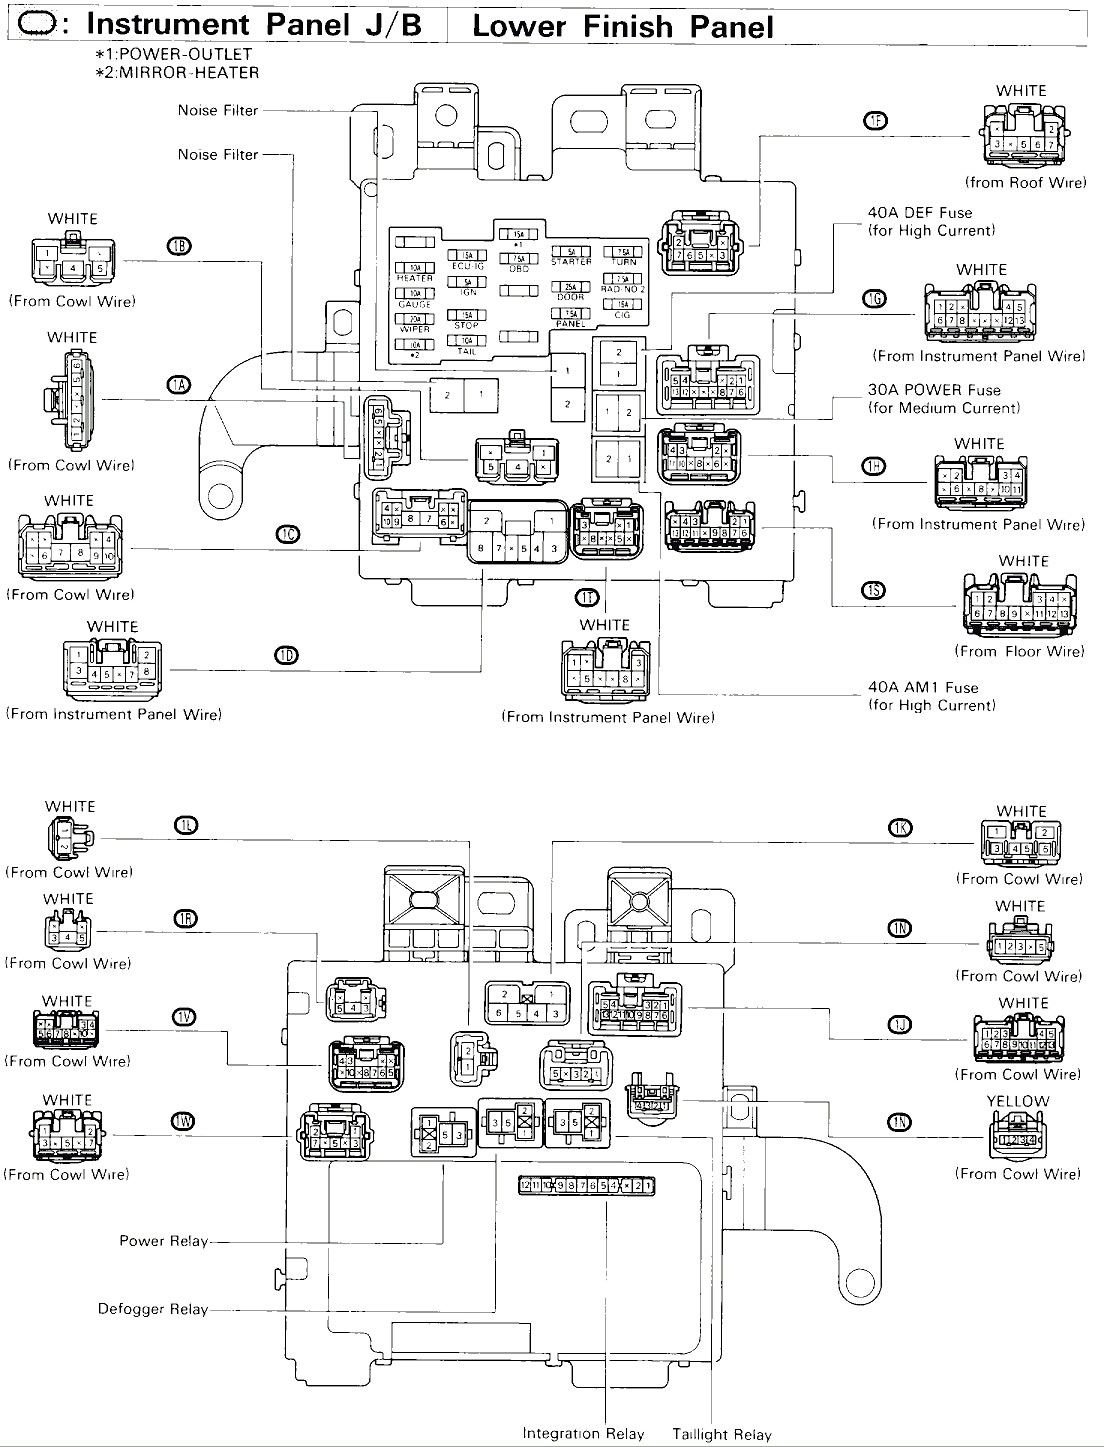 [WRG-7679] 94 Camry Le Wiring Diagram